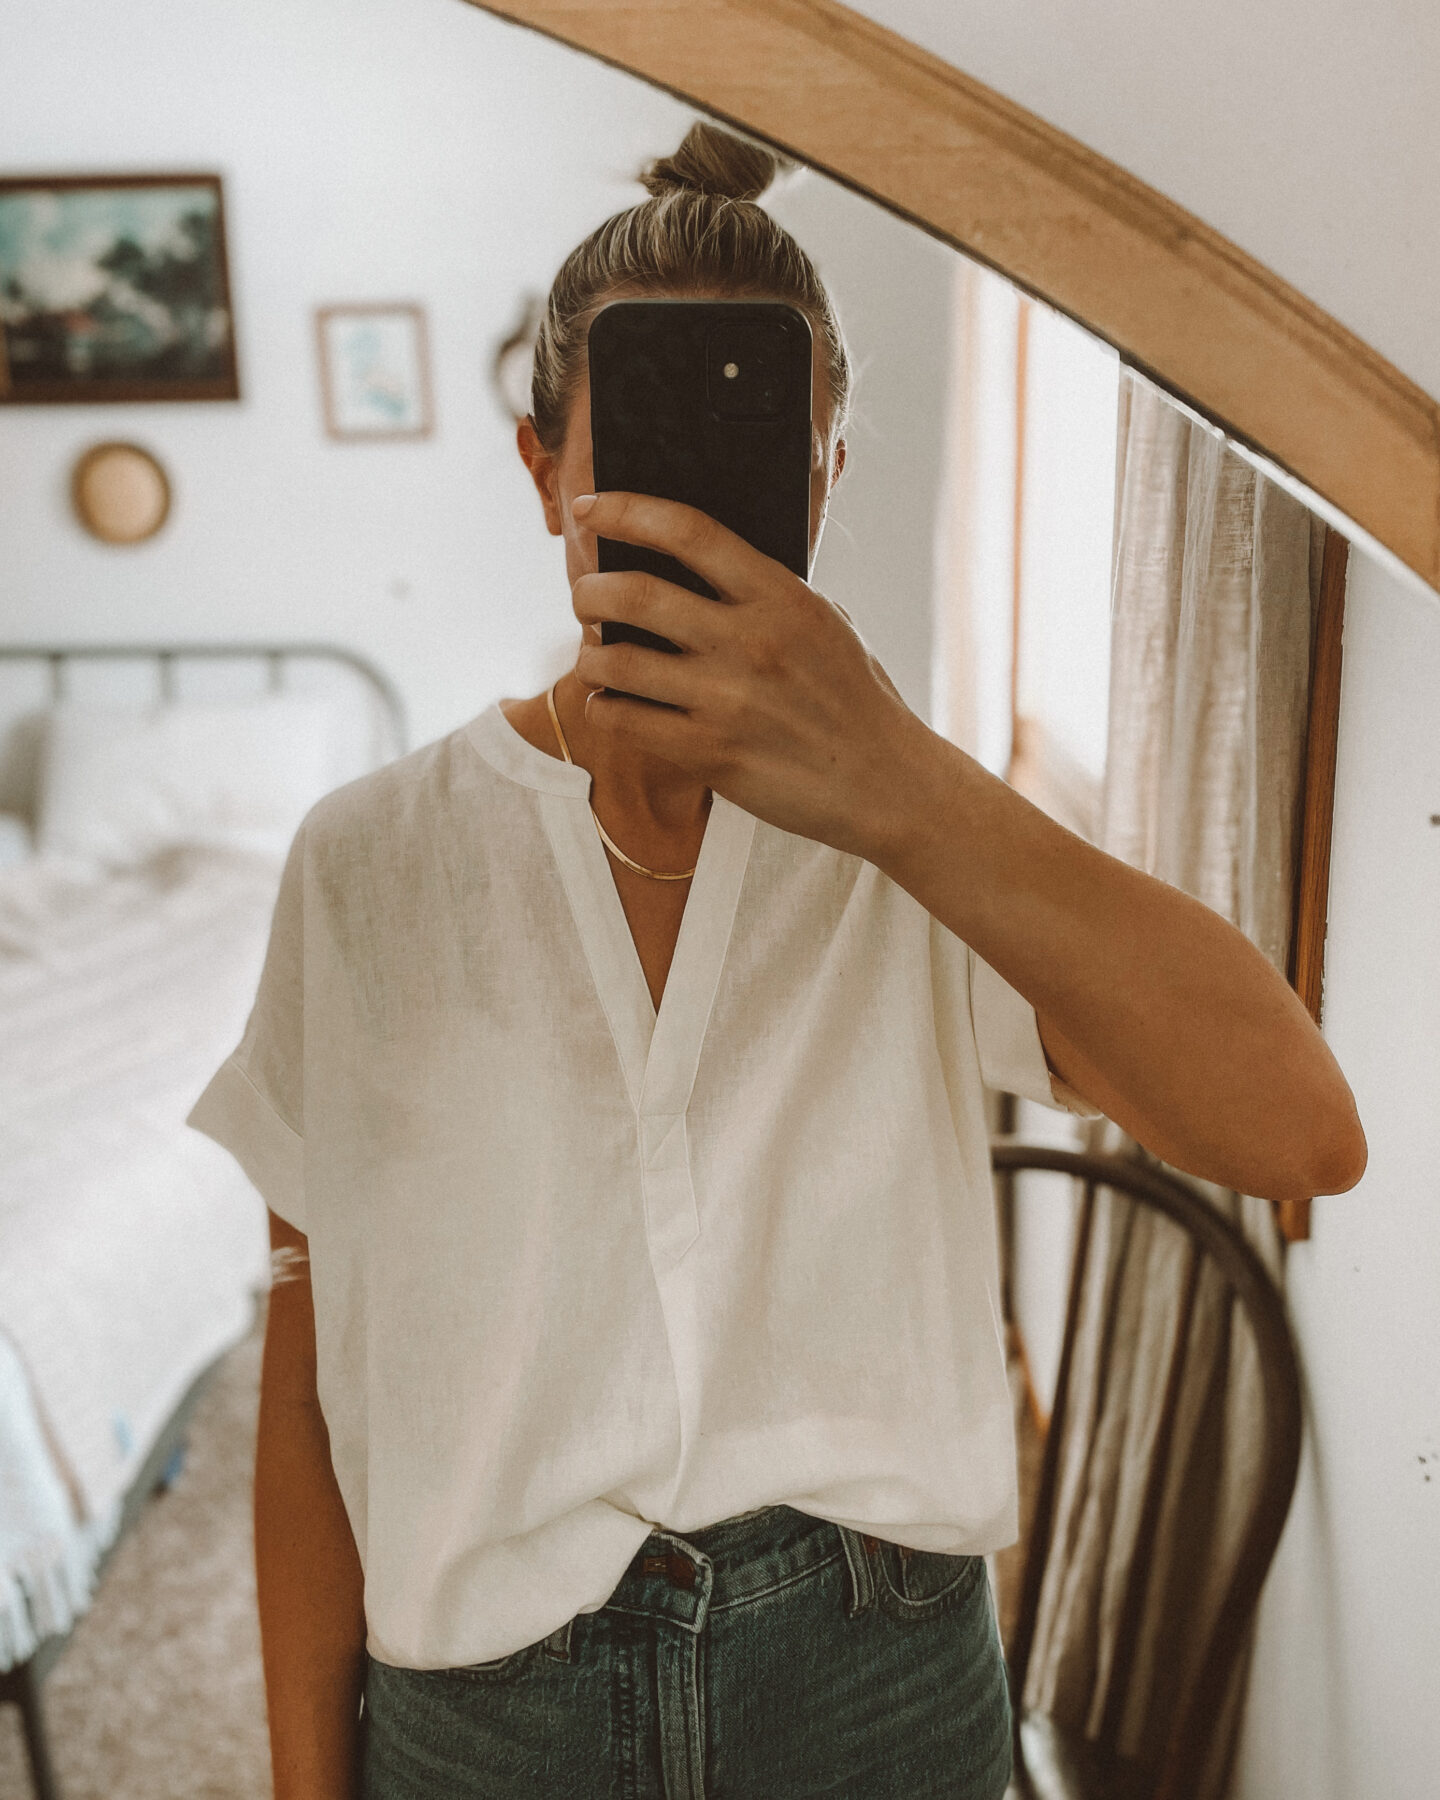 New Spring pieces from  Madewell & J.Crew: Soft, Easy Basics